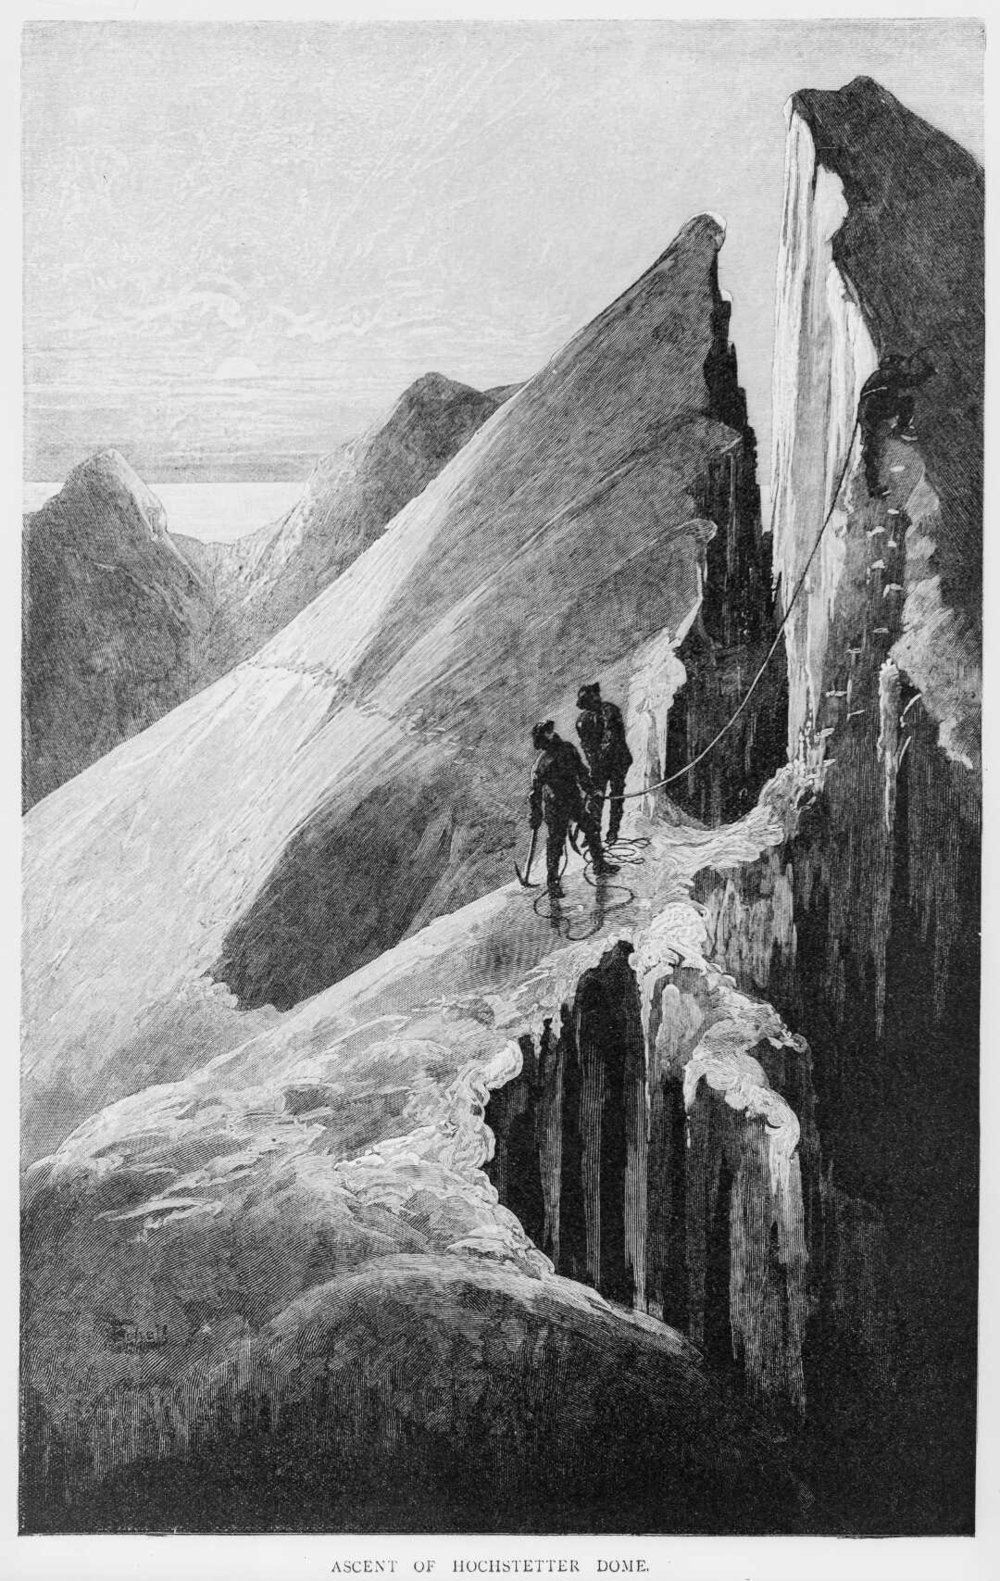 Ascent of the Hochstetter Dome [March 1883]. [Drawn by] F.Schell [Melbourne, Picturesque Atlas Publishing Company, 1886]. Permission of the Alexander Turnbull Library, Wellington, New Zealand, must be obtained before any re-use of this image.